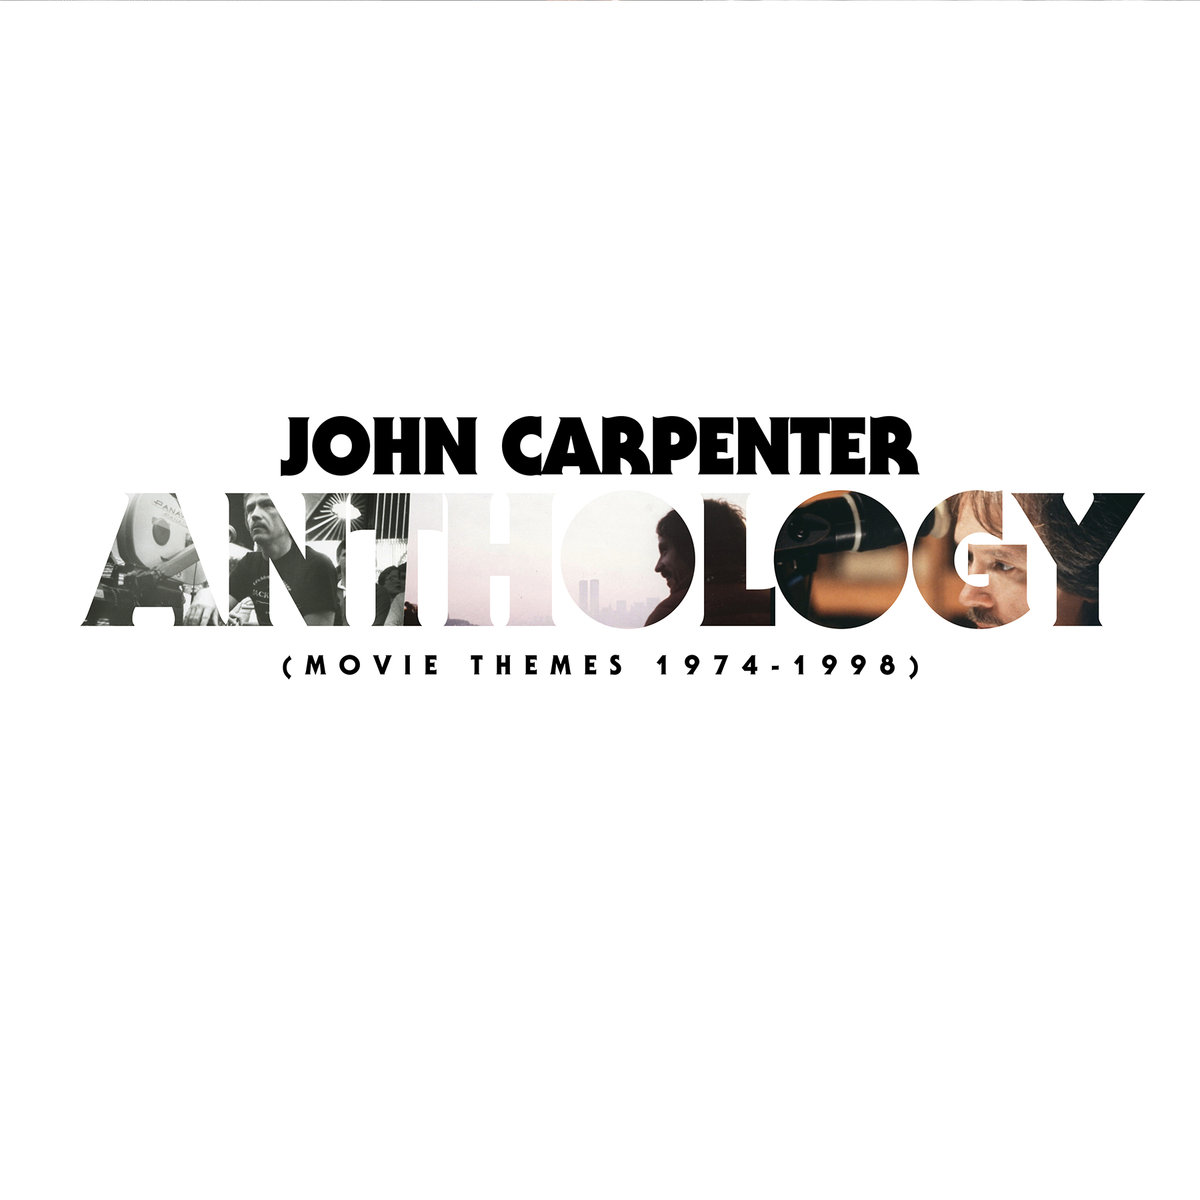 JOHN CARPENTER Anthology: Movie Themes 1974-1998 – Vinyl LP (red + 7″ | black) *Pre-order